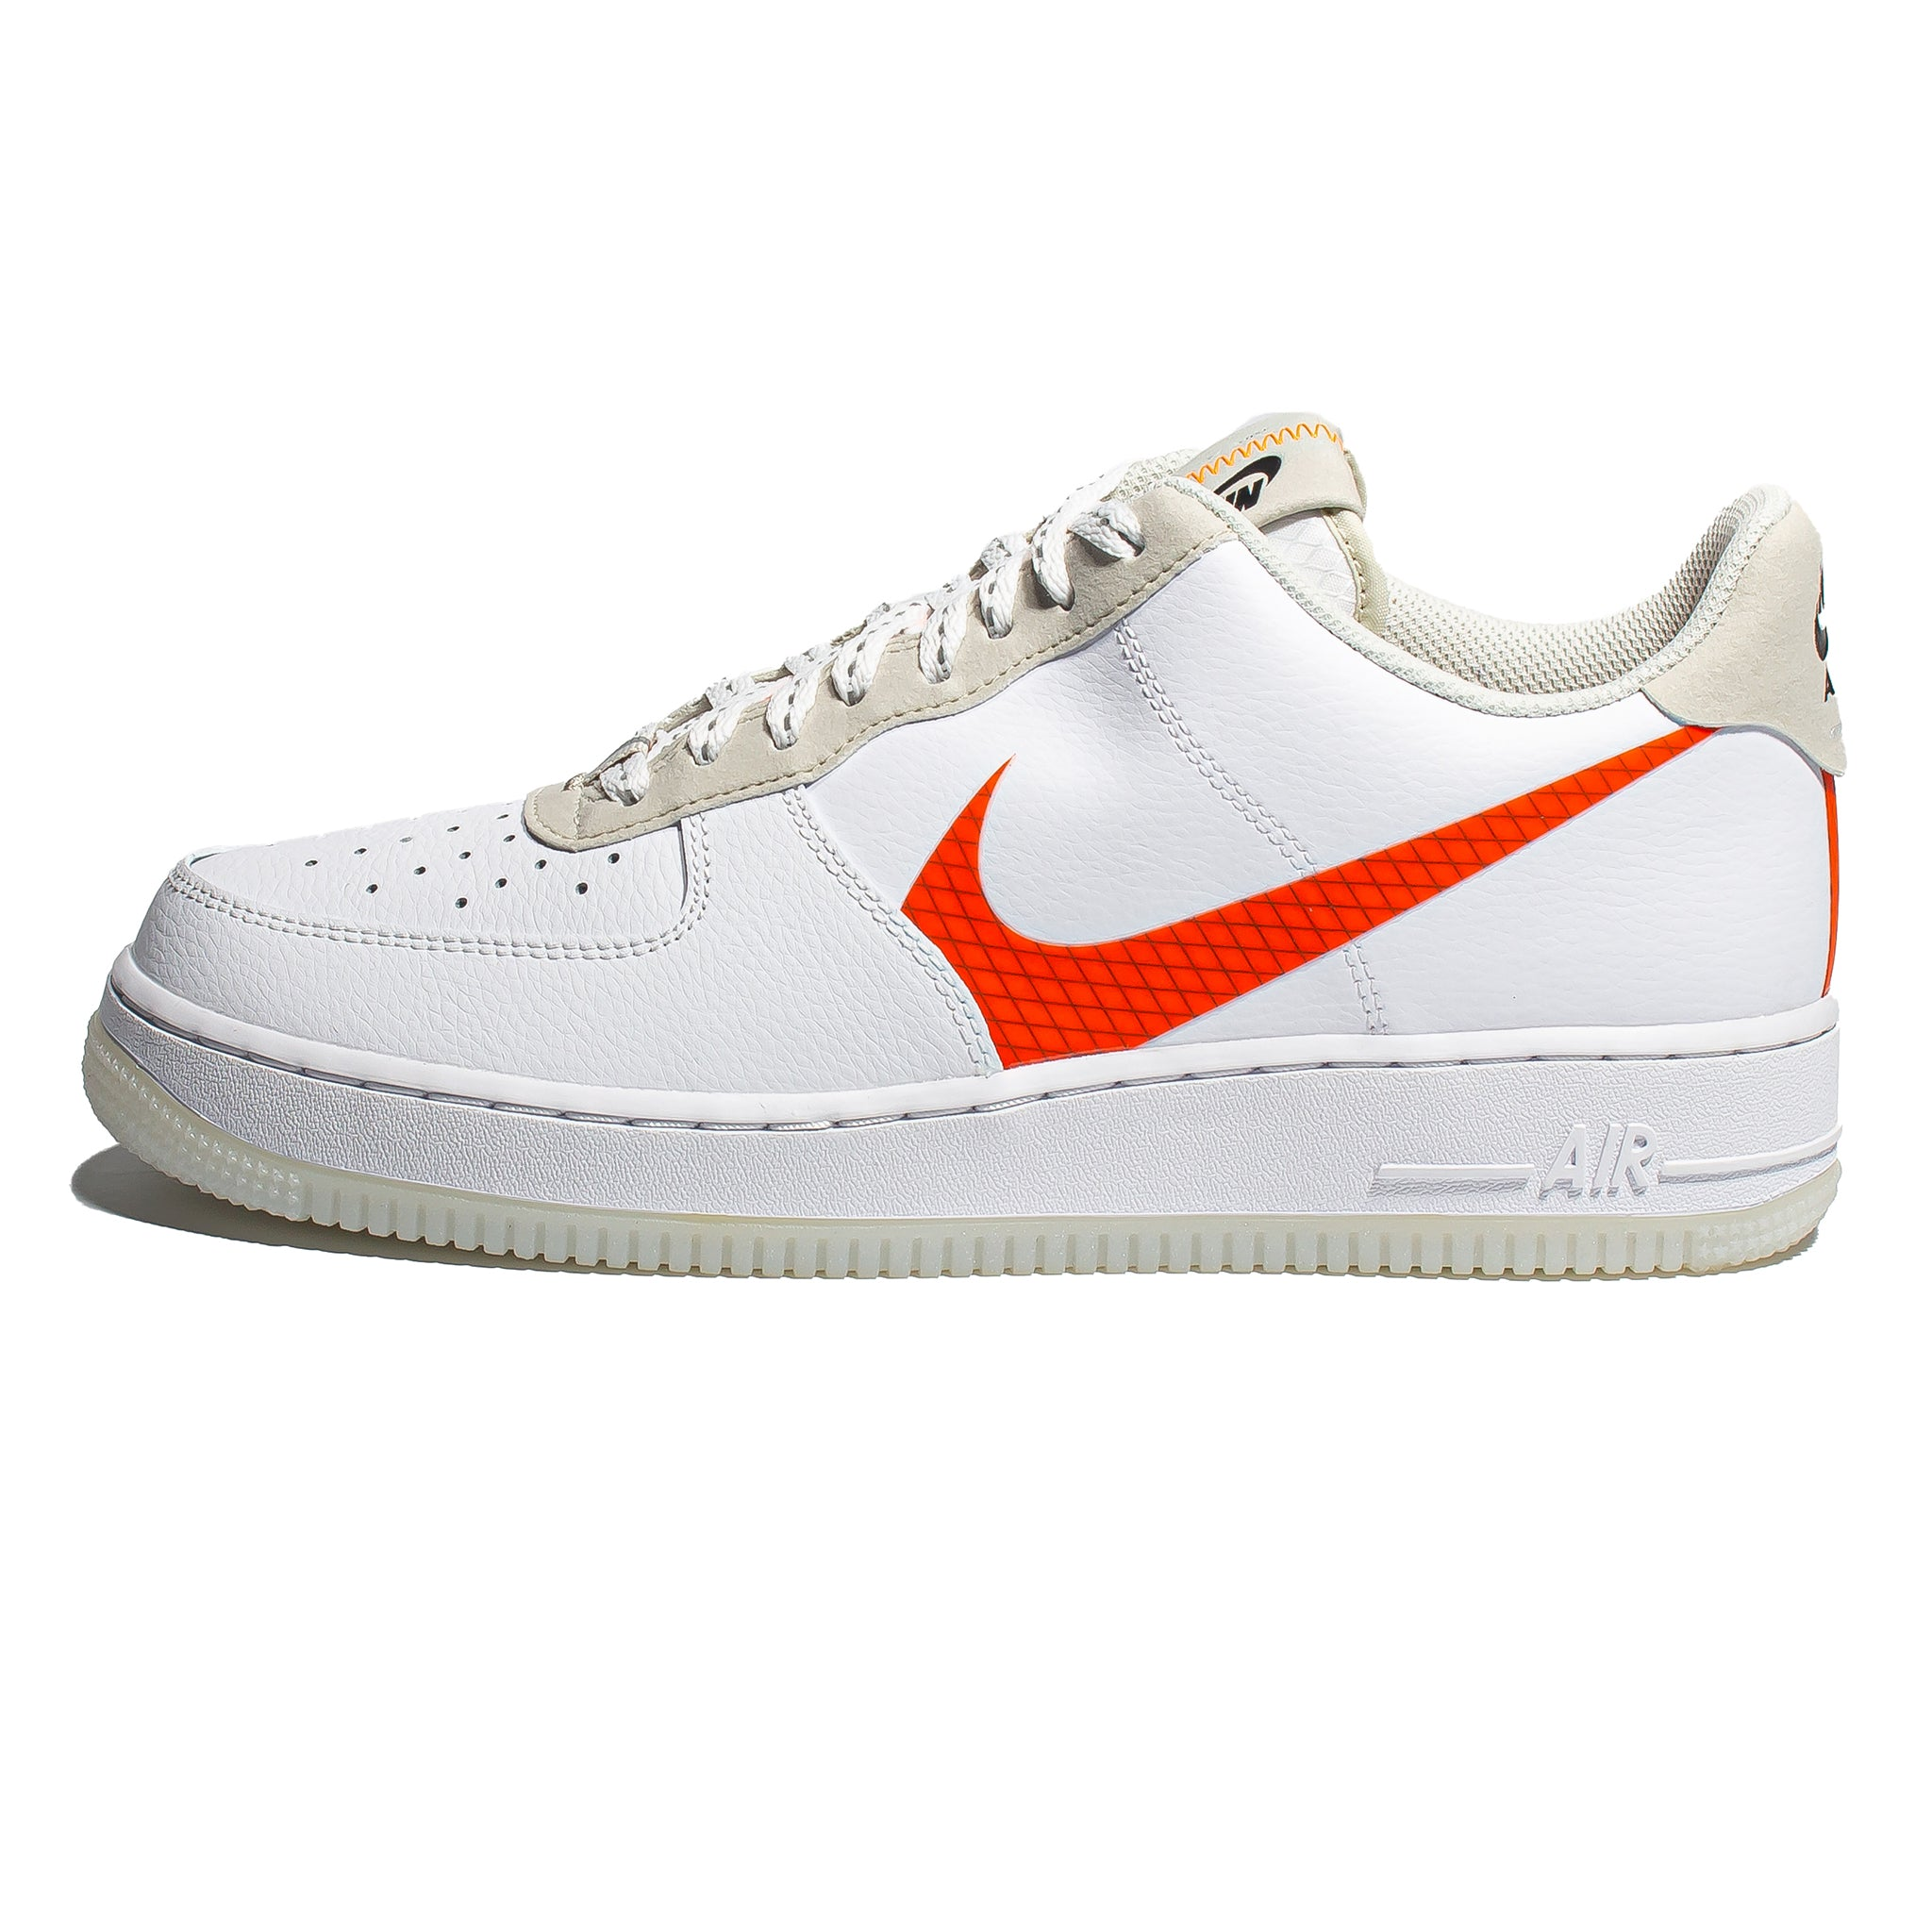 Nike Air Force 1 '07 LV8 3 'White/Total Orange'